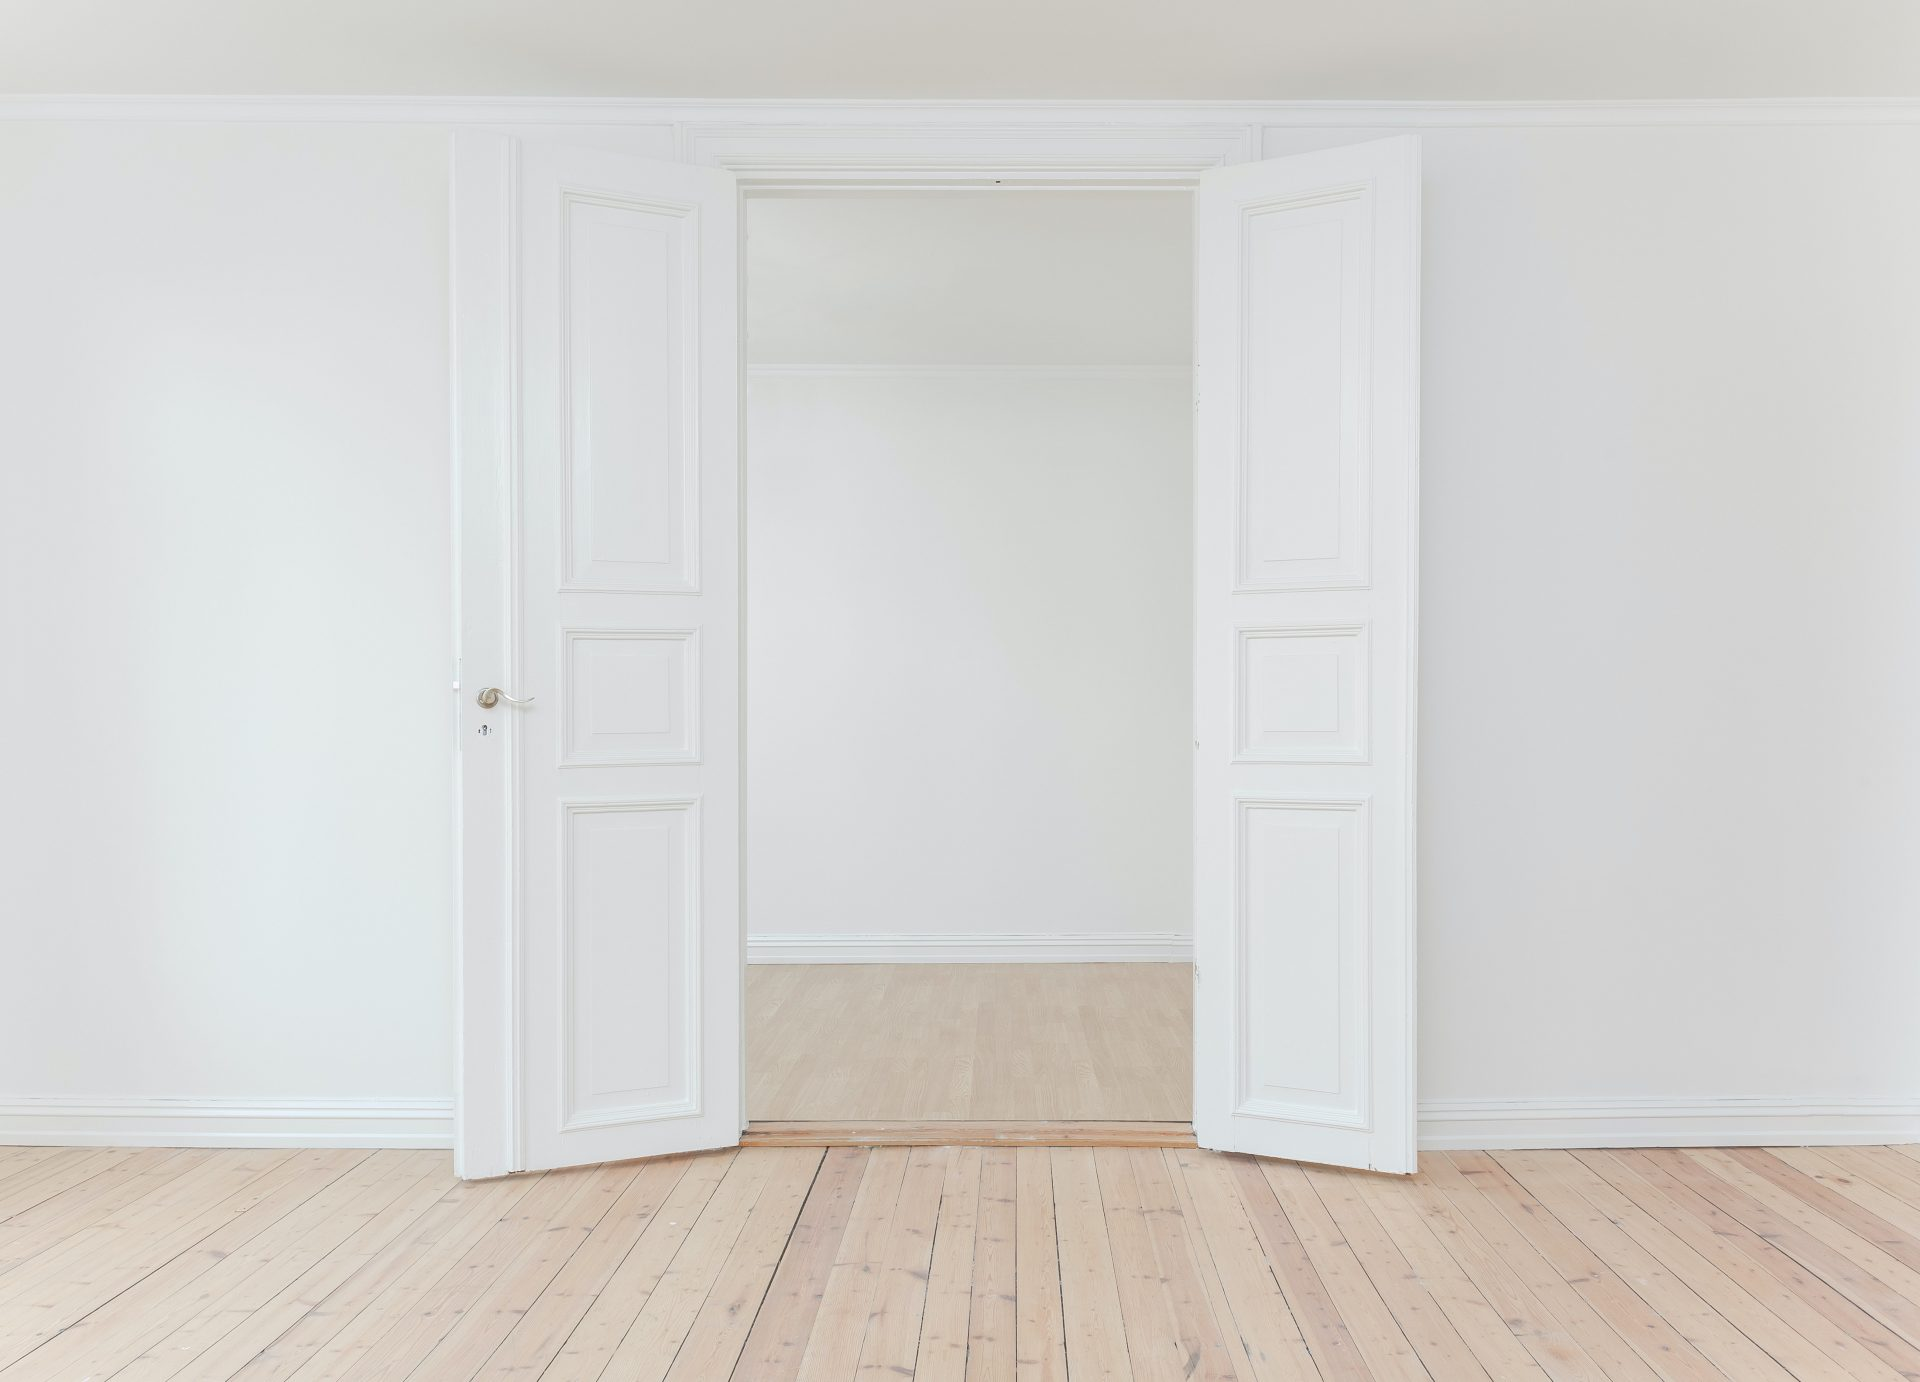 Photo of an empty interior with white walls